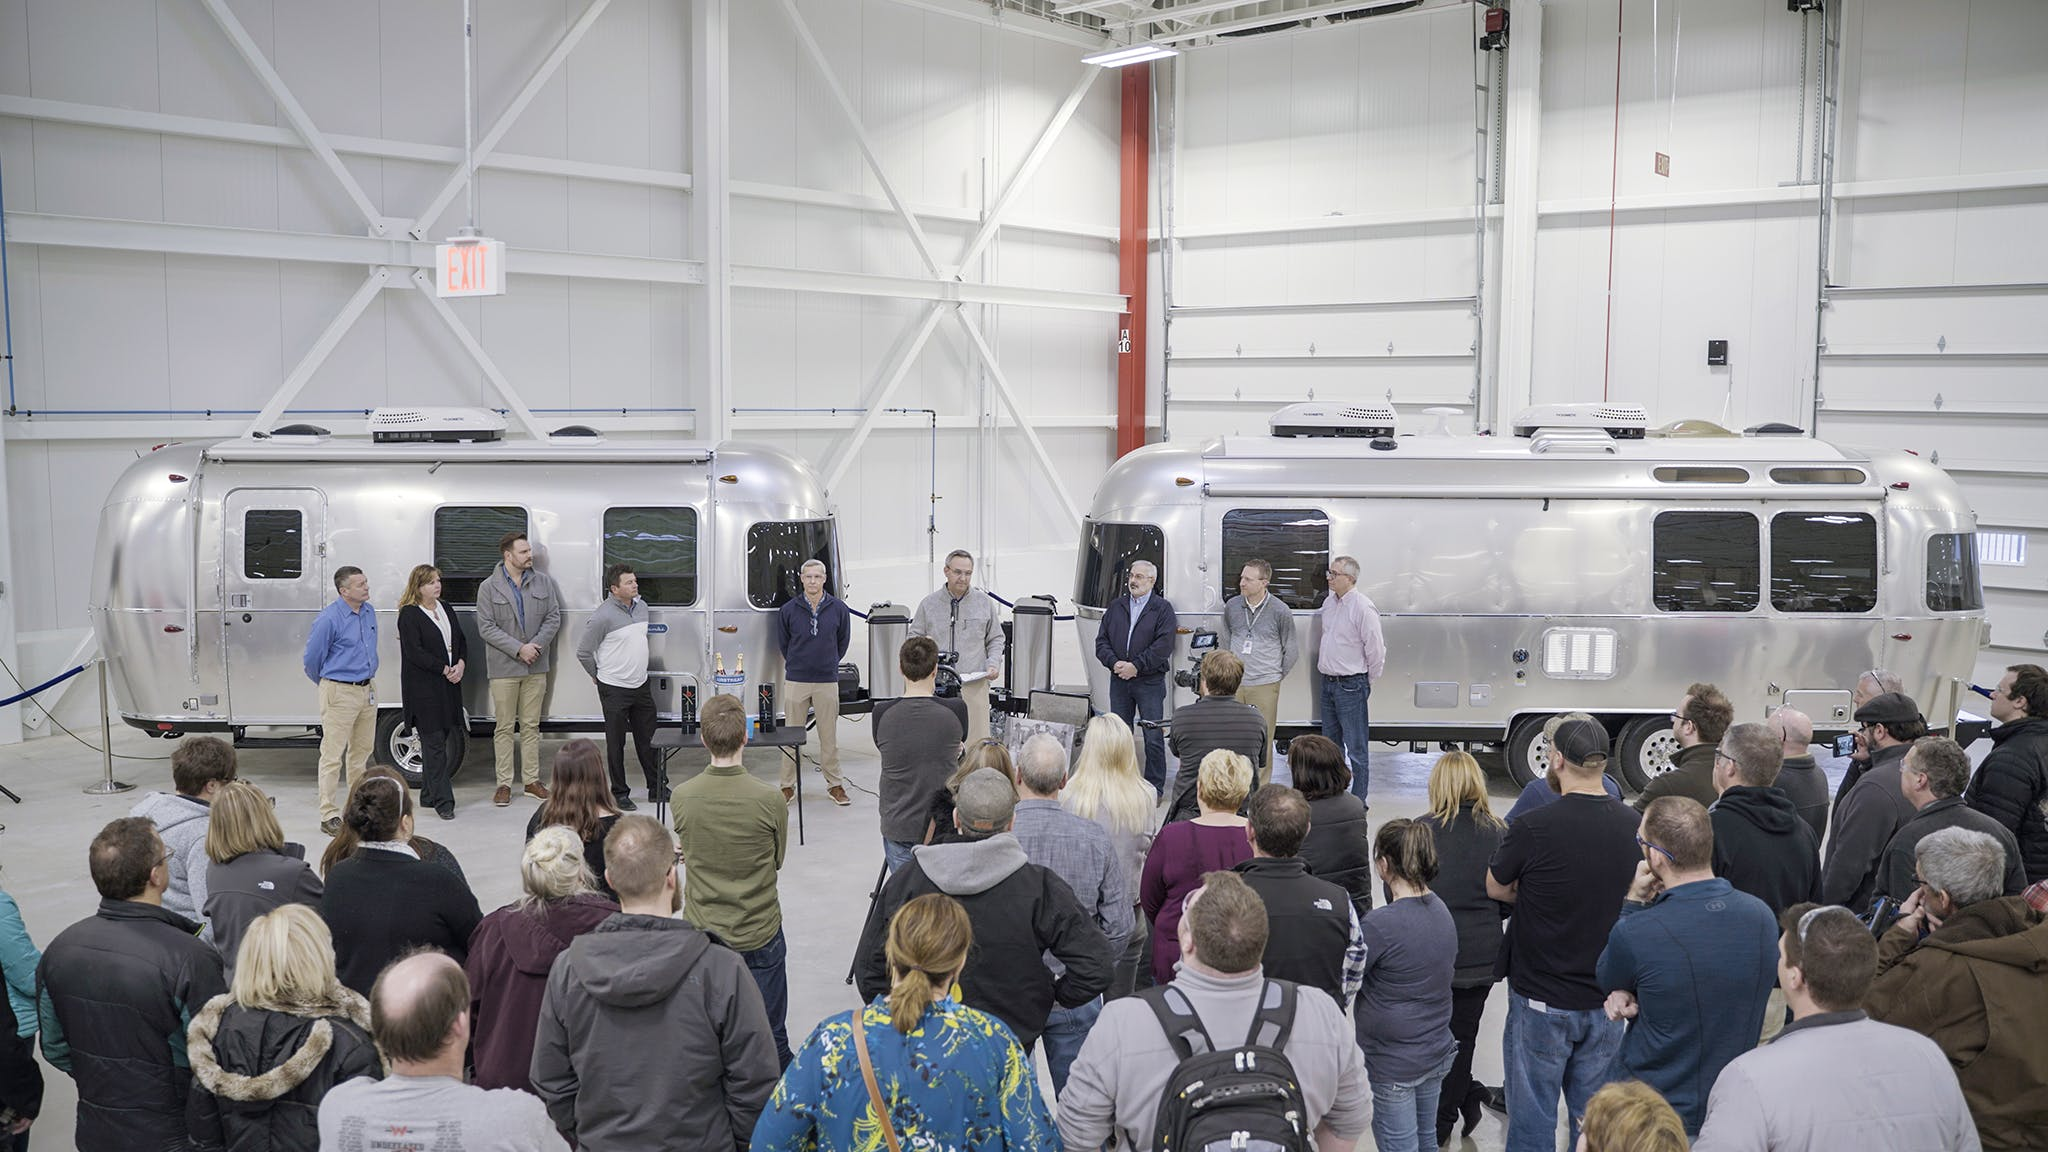 Airstream Christening Ceremony First Trailer and Last Trailer